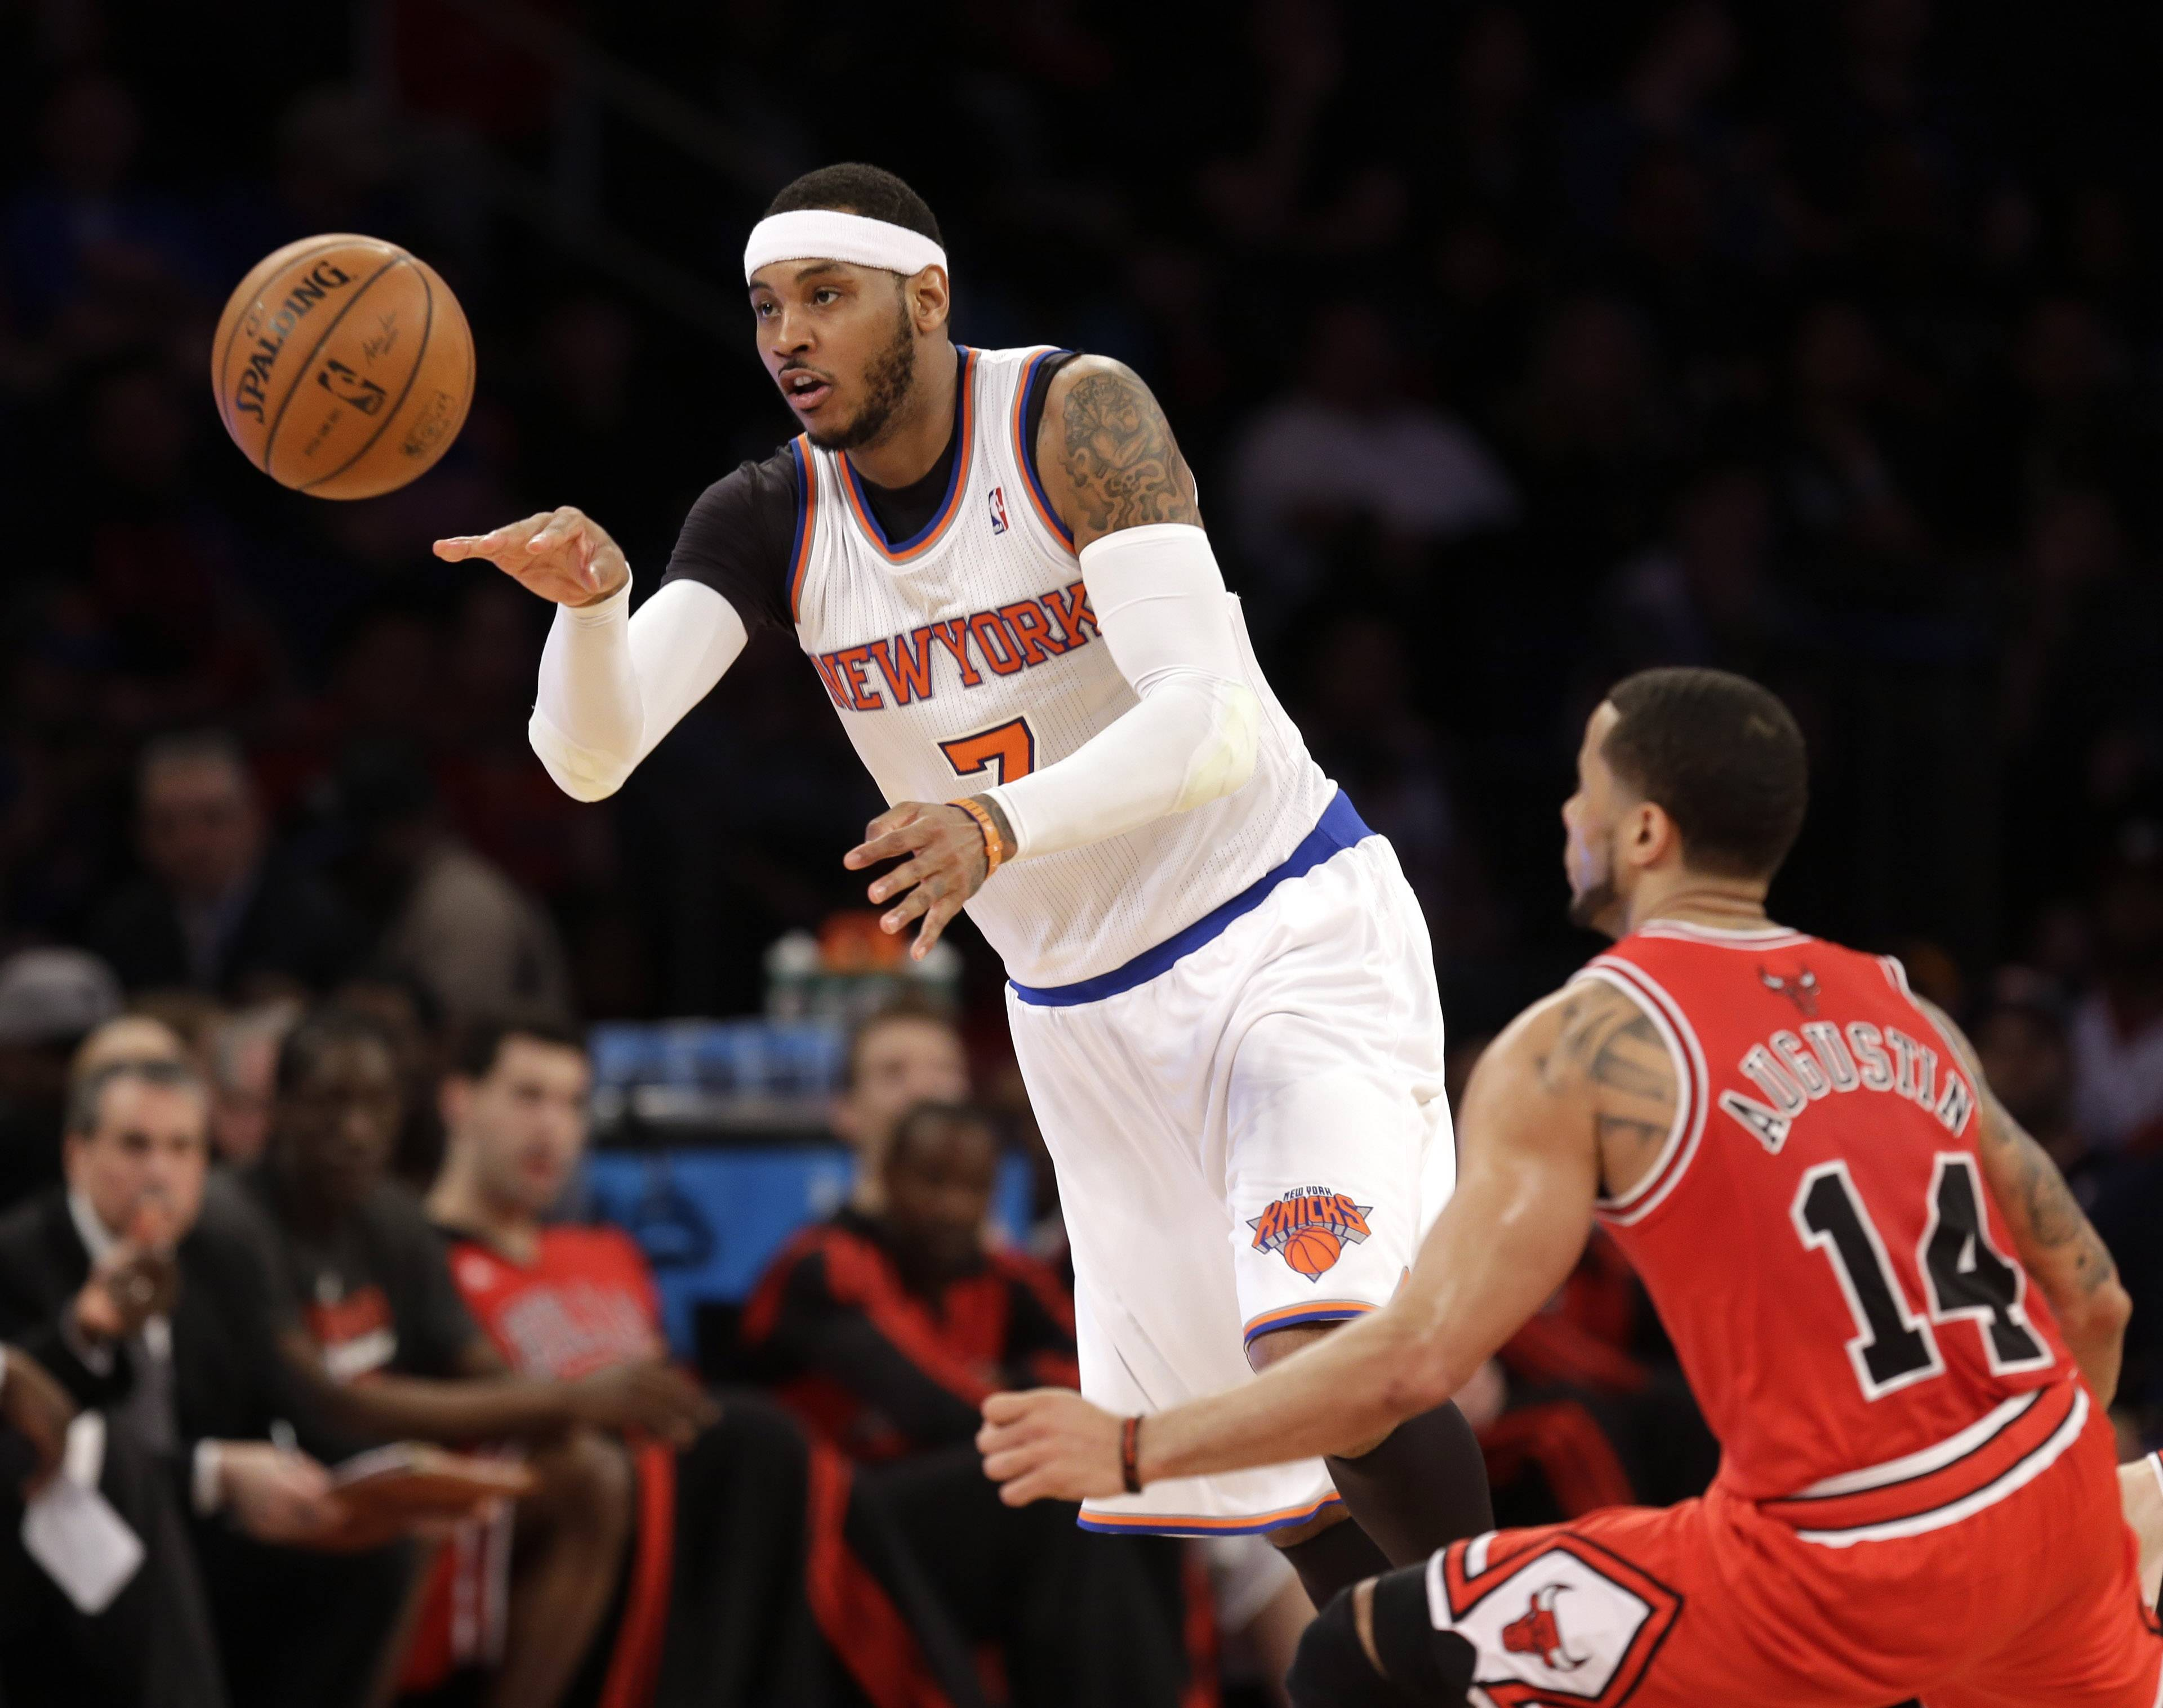 New York Knicks' Carmelo Anthony, left, passes the ball past Chicago Bulls' D.J. Augustin during the first half of the April 13 game in New York. Anthony is headed into free agency and could end up on the Bulls roster.